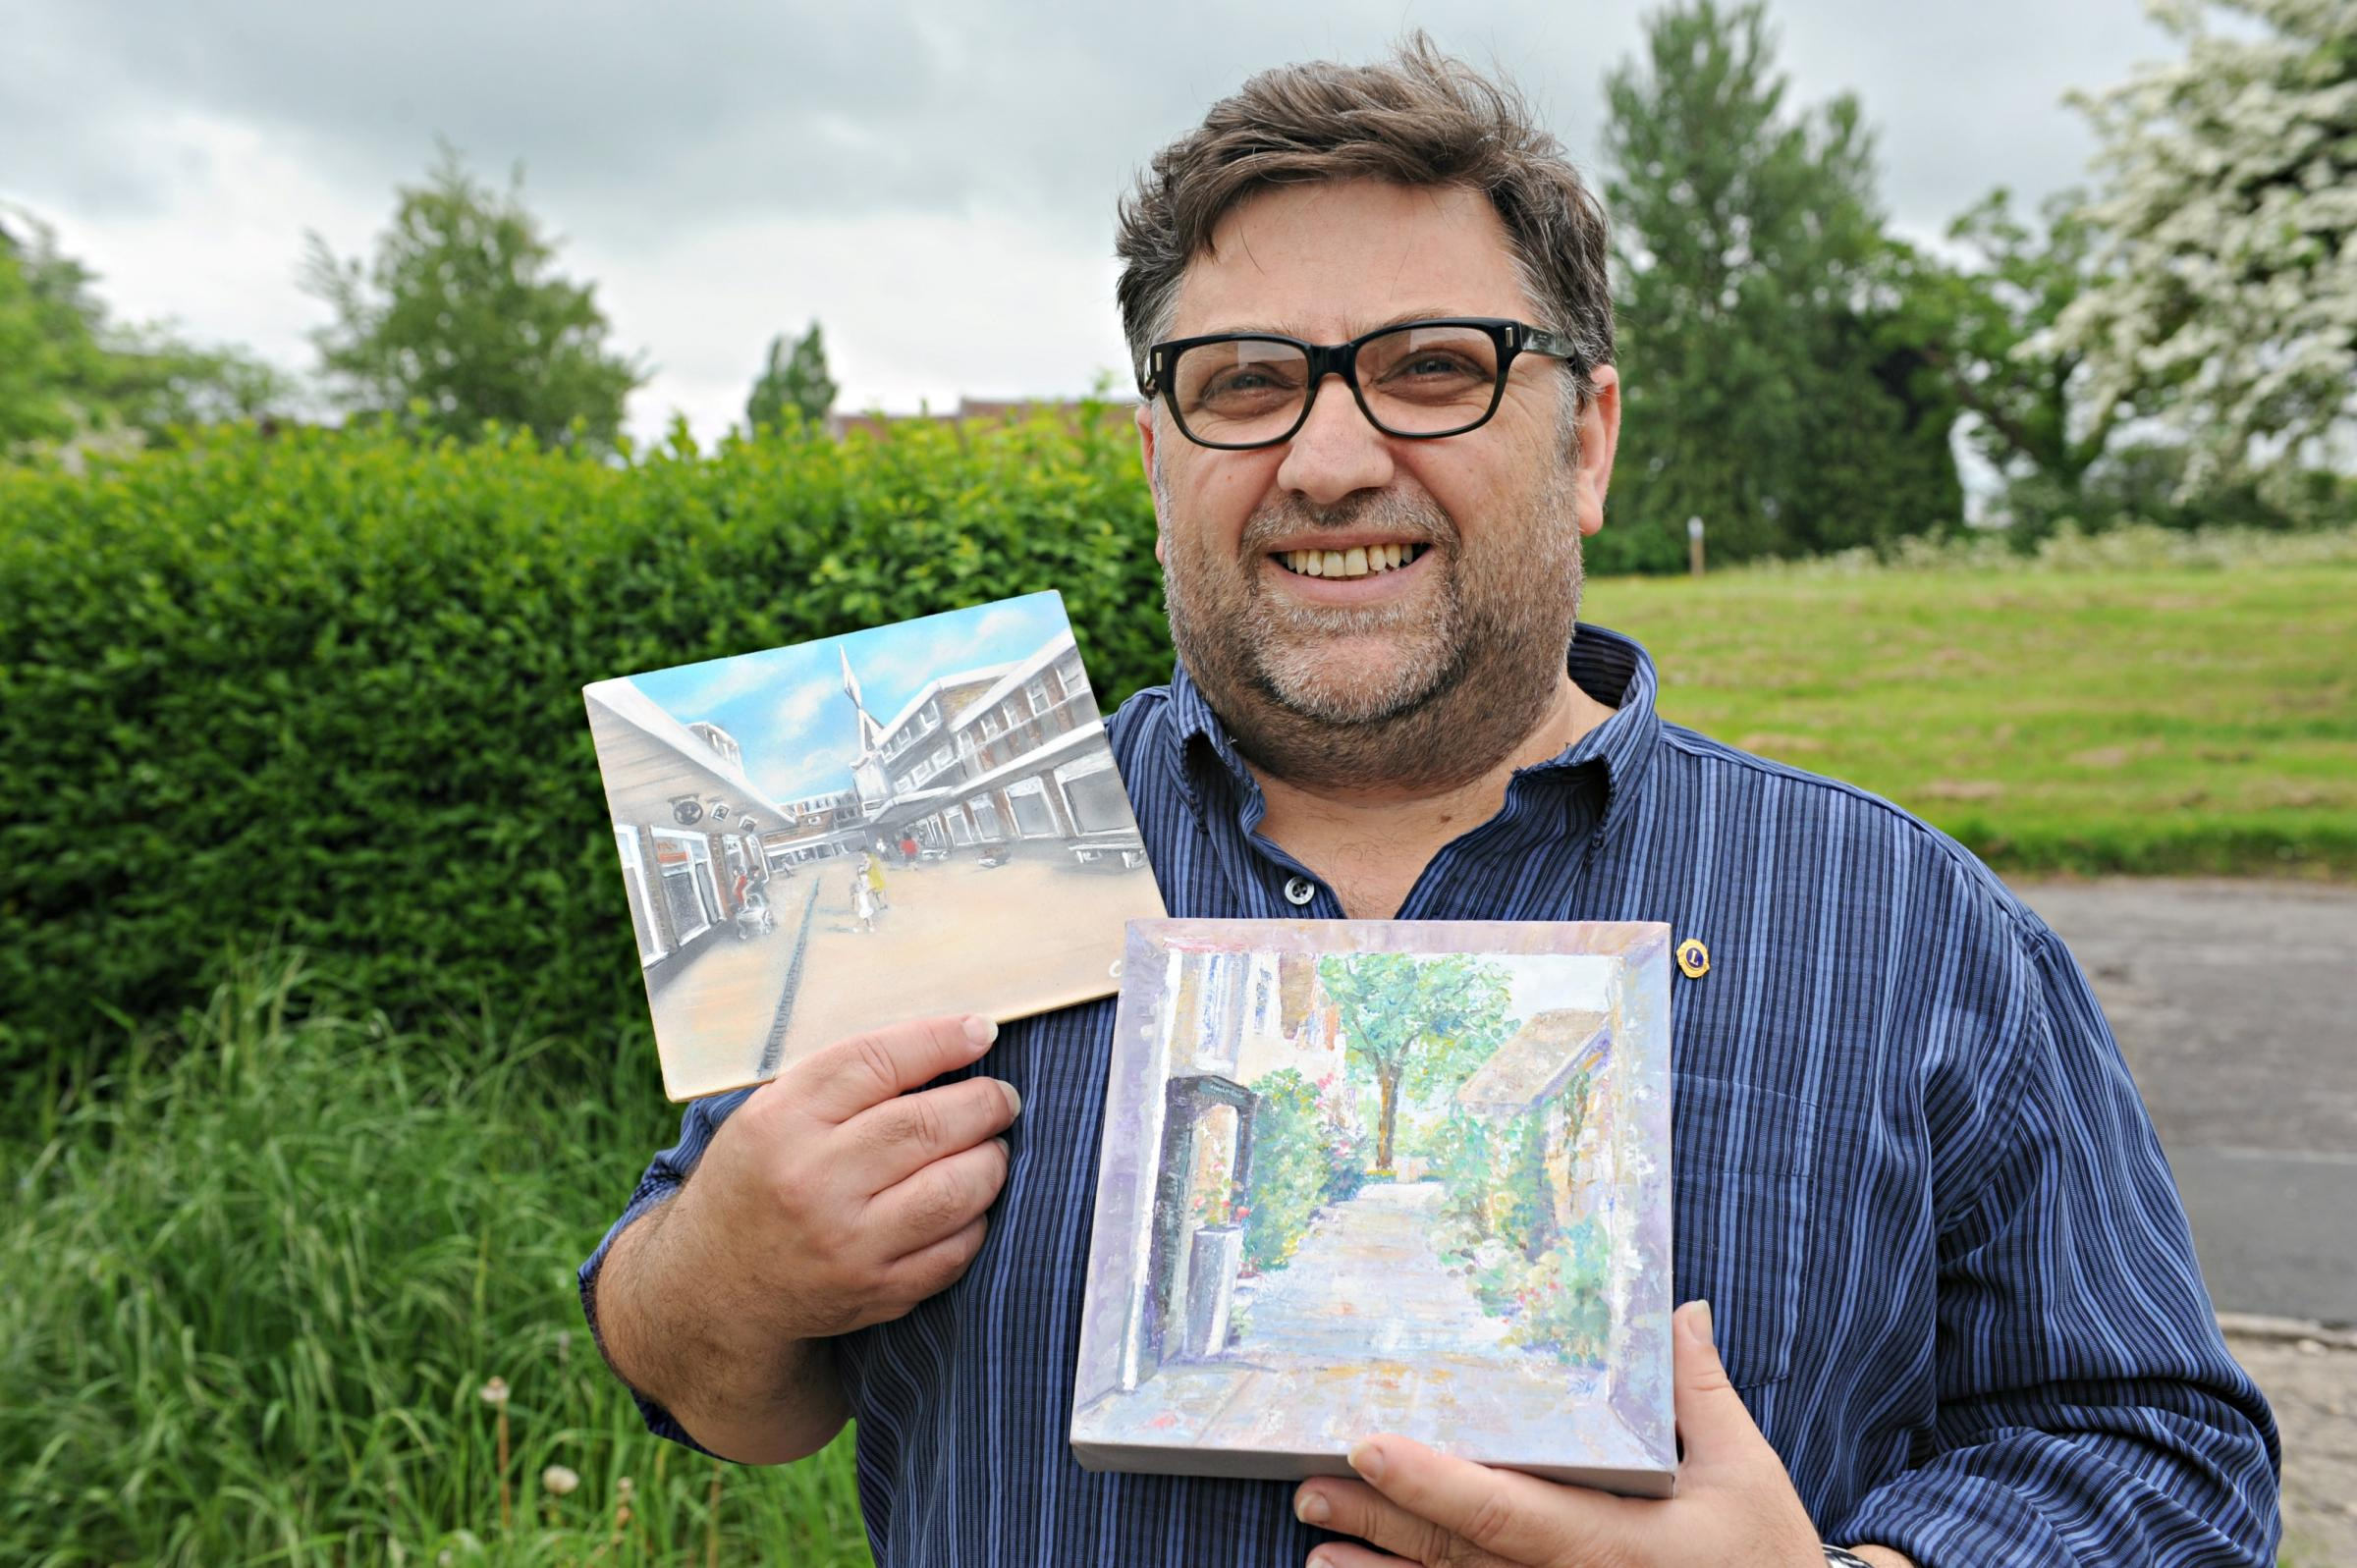 Juan Nuevo with some of the artwork that will be on display in Yate this weekend